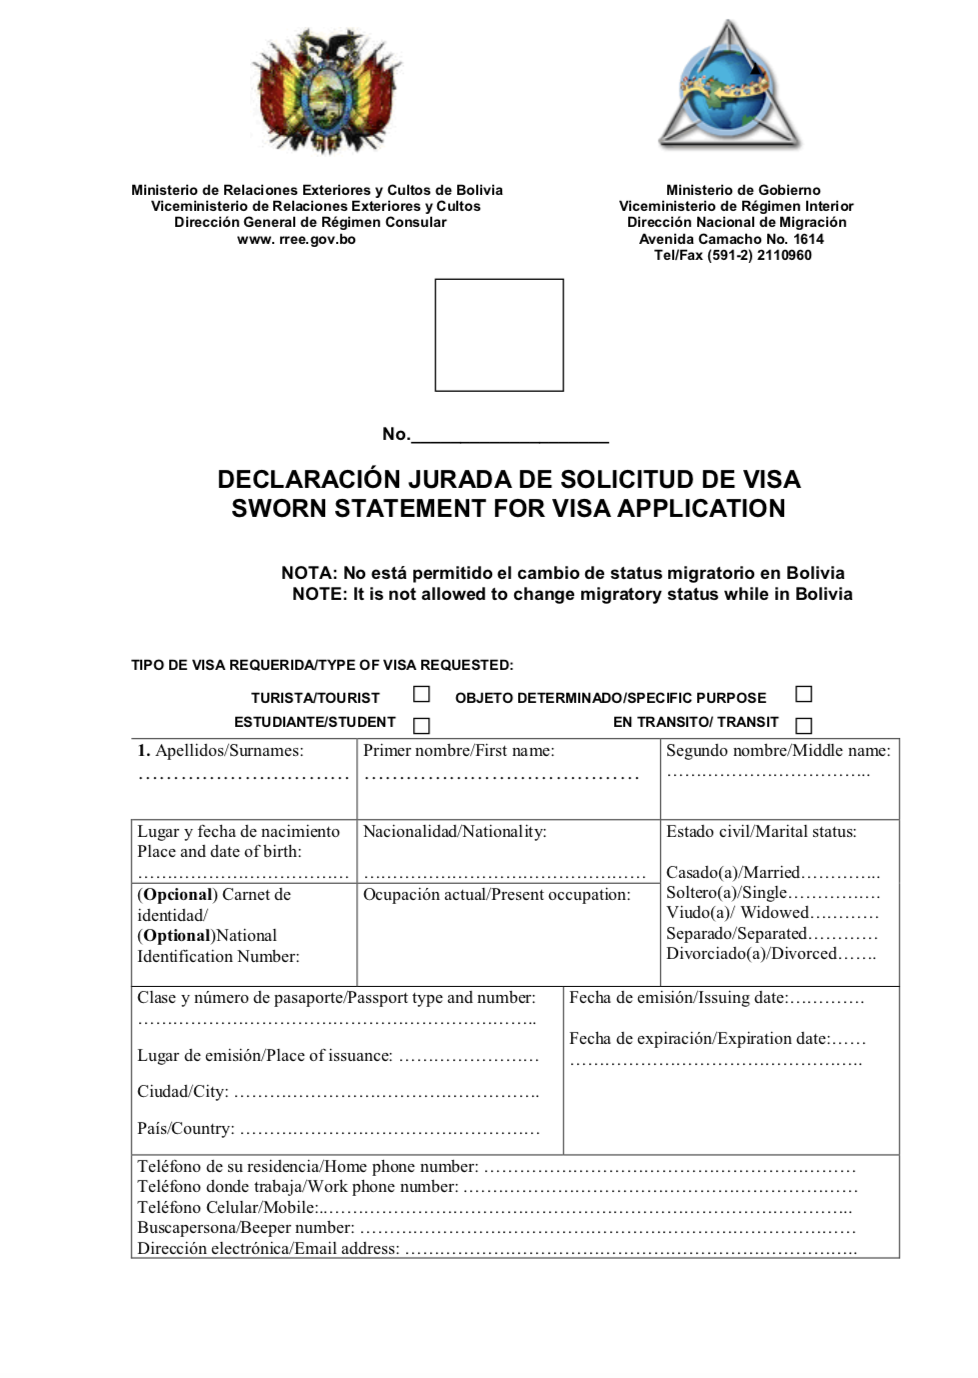 The Sworn Statement of Visa Application for Bolivia (first page only)